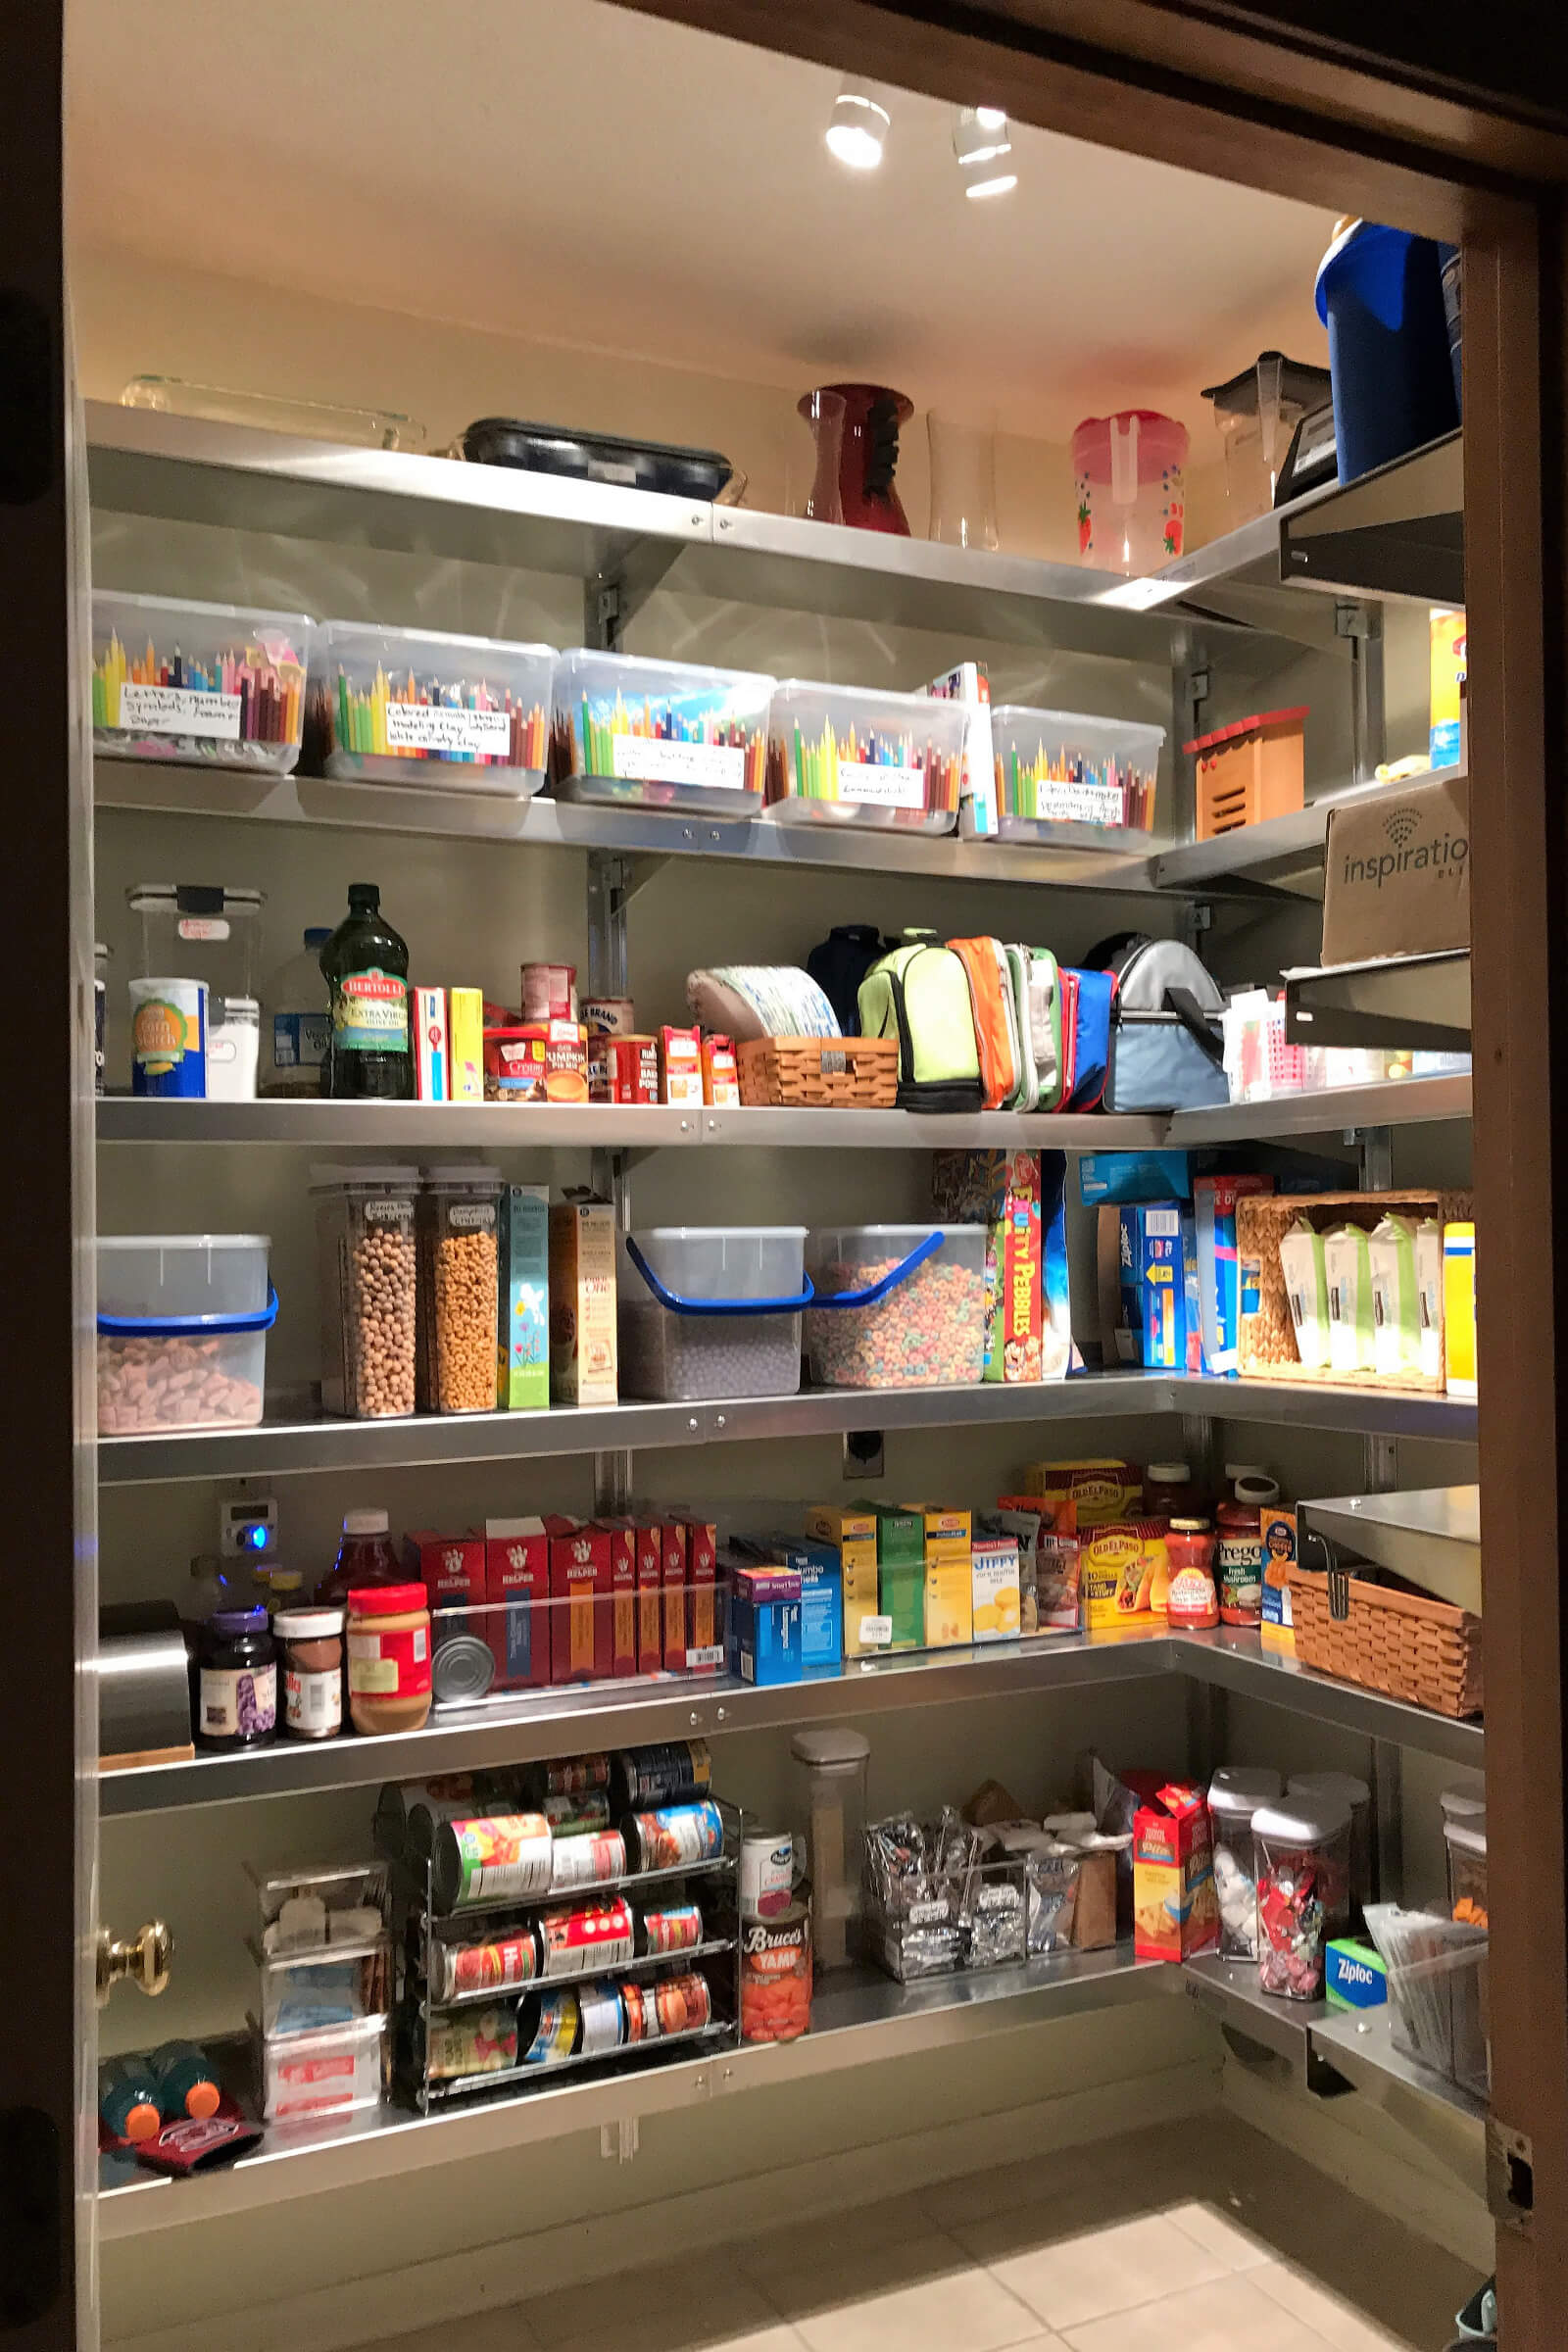 How To Organize Pantry Shelves